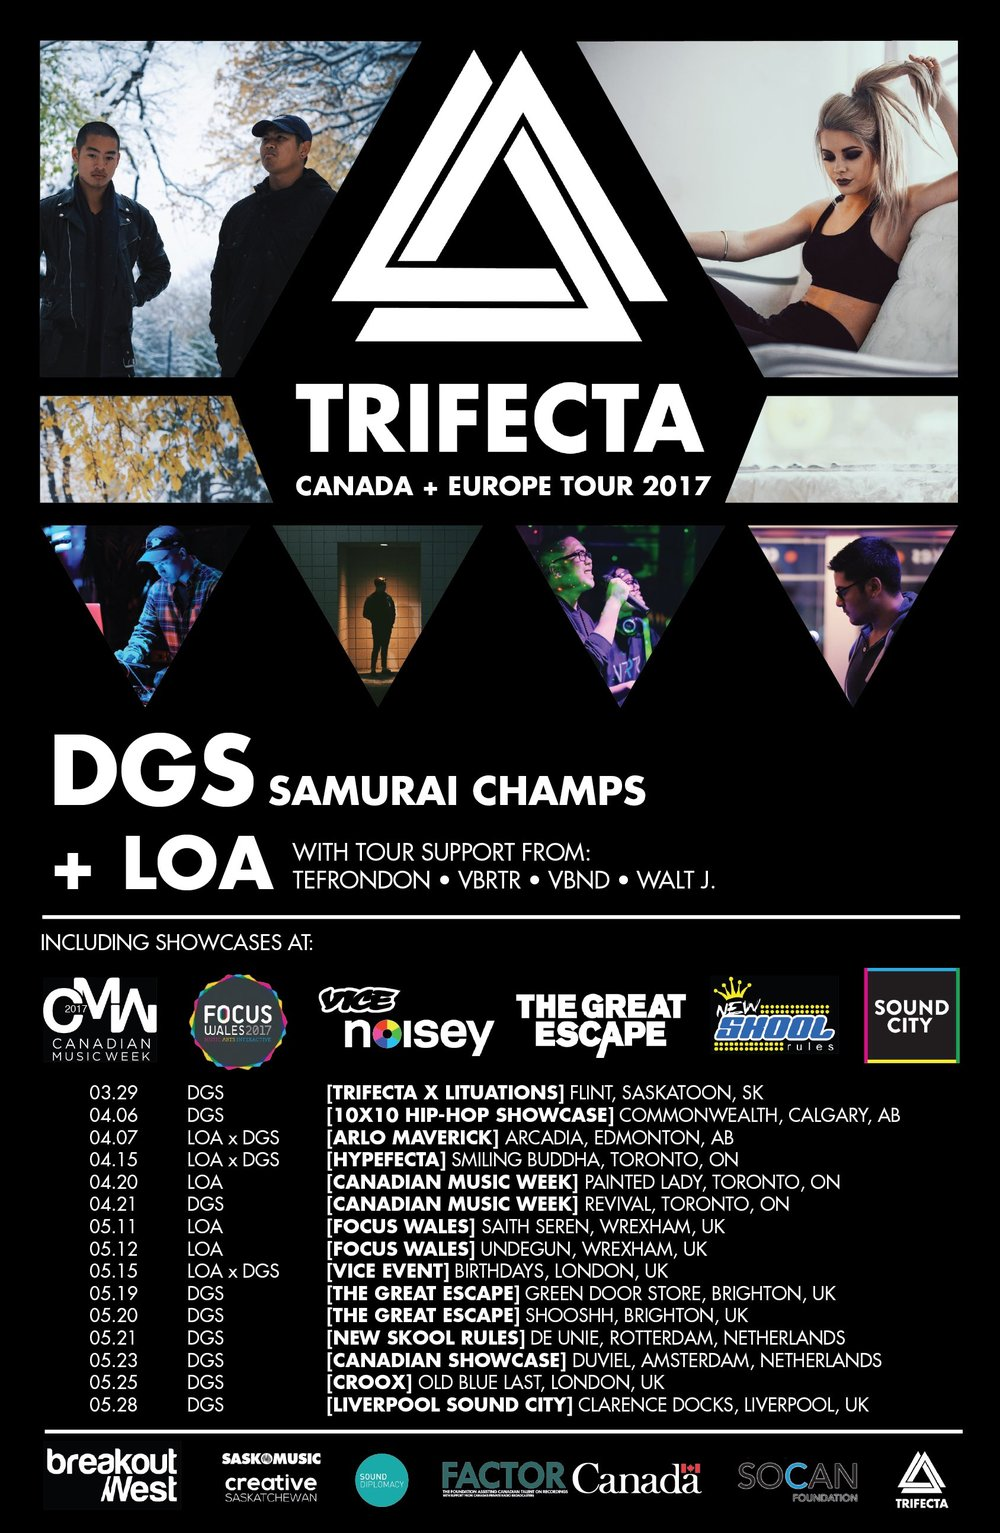 Trifecta Canada UK Tour 2017-01.jpg